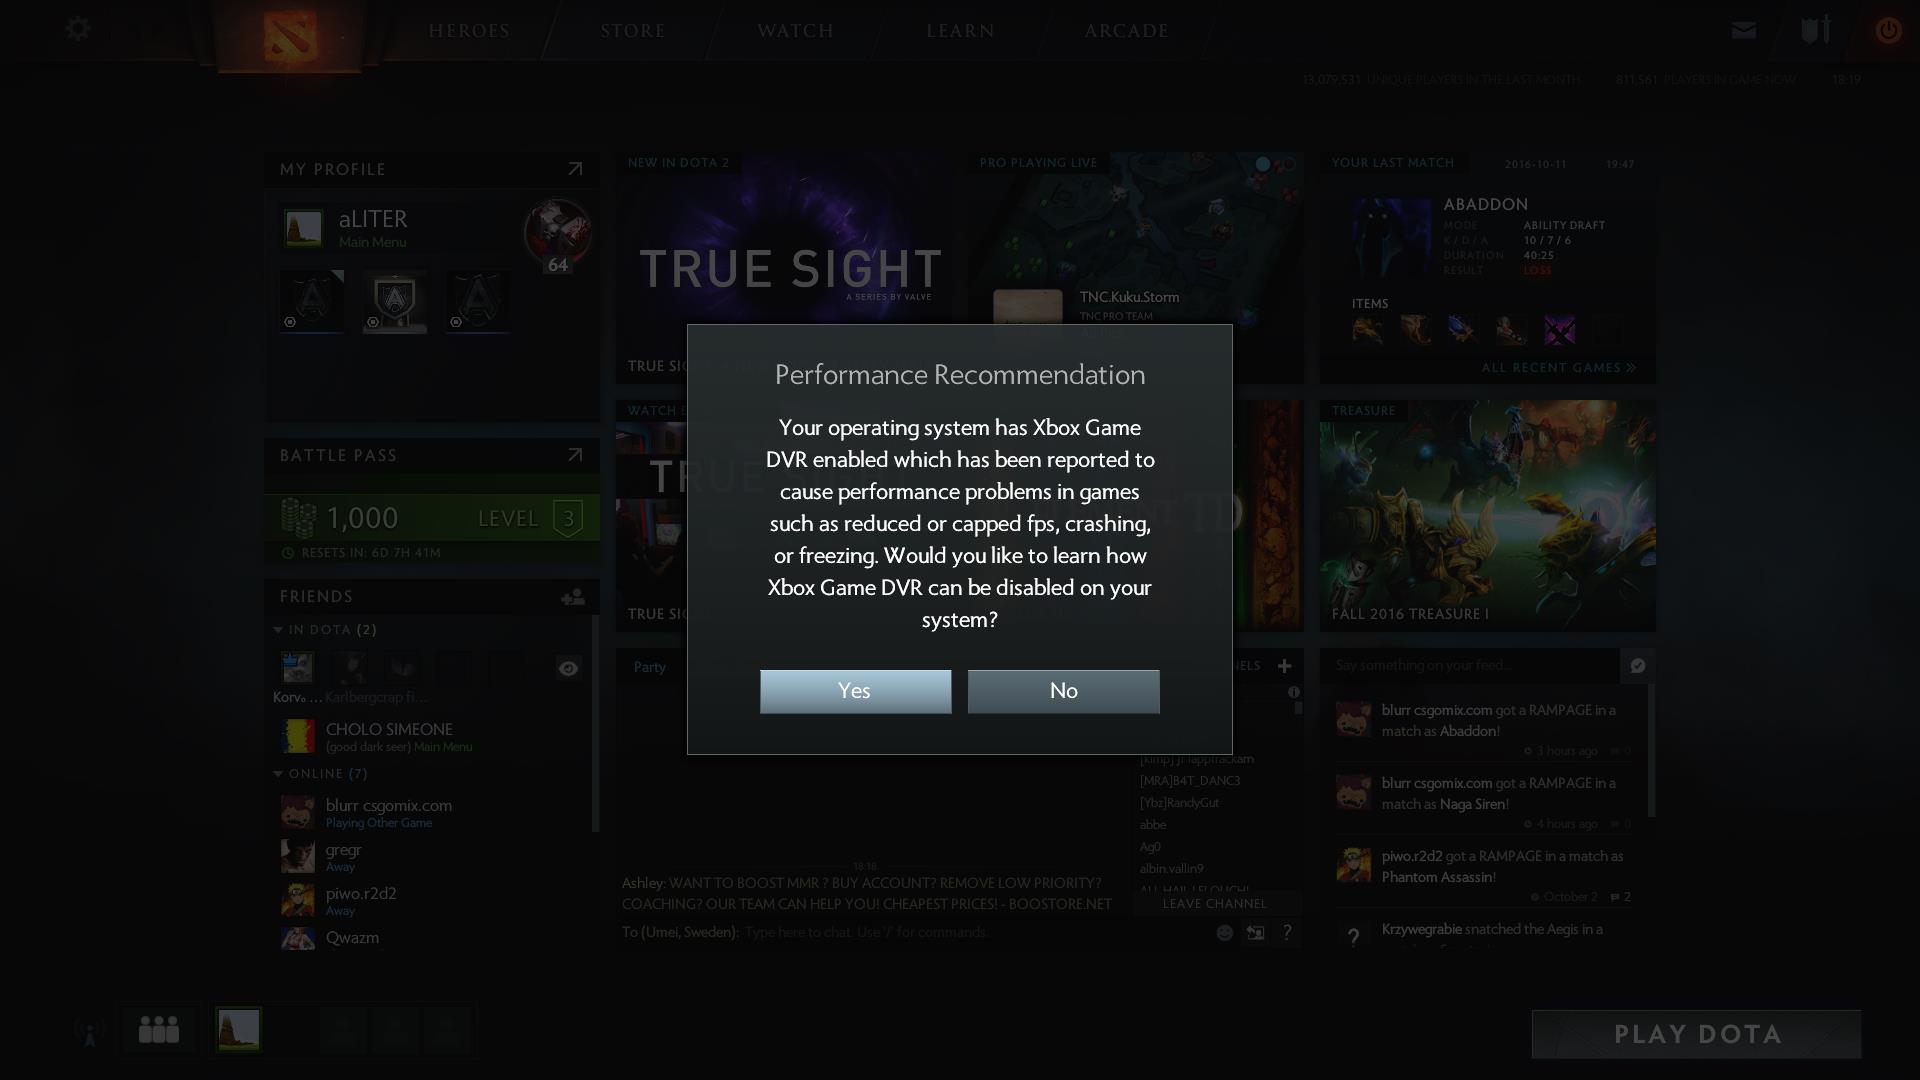 Valve to Dota 2 players on Windows 10: disable Xbox Game DVR for